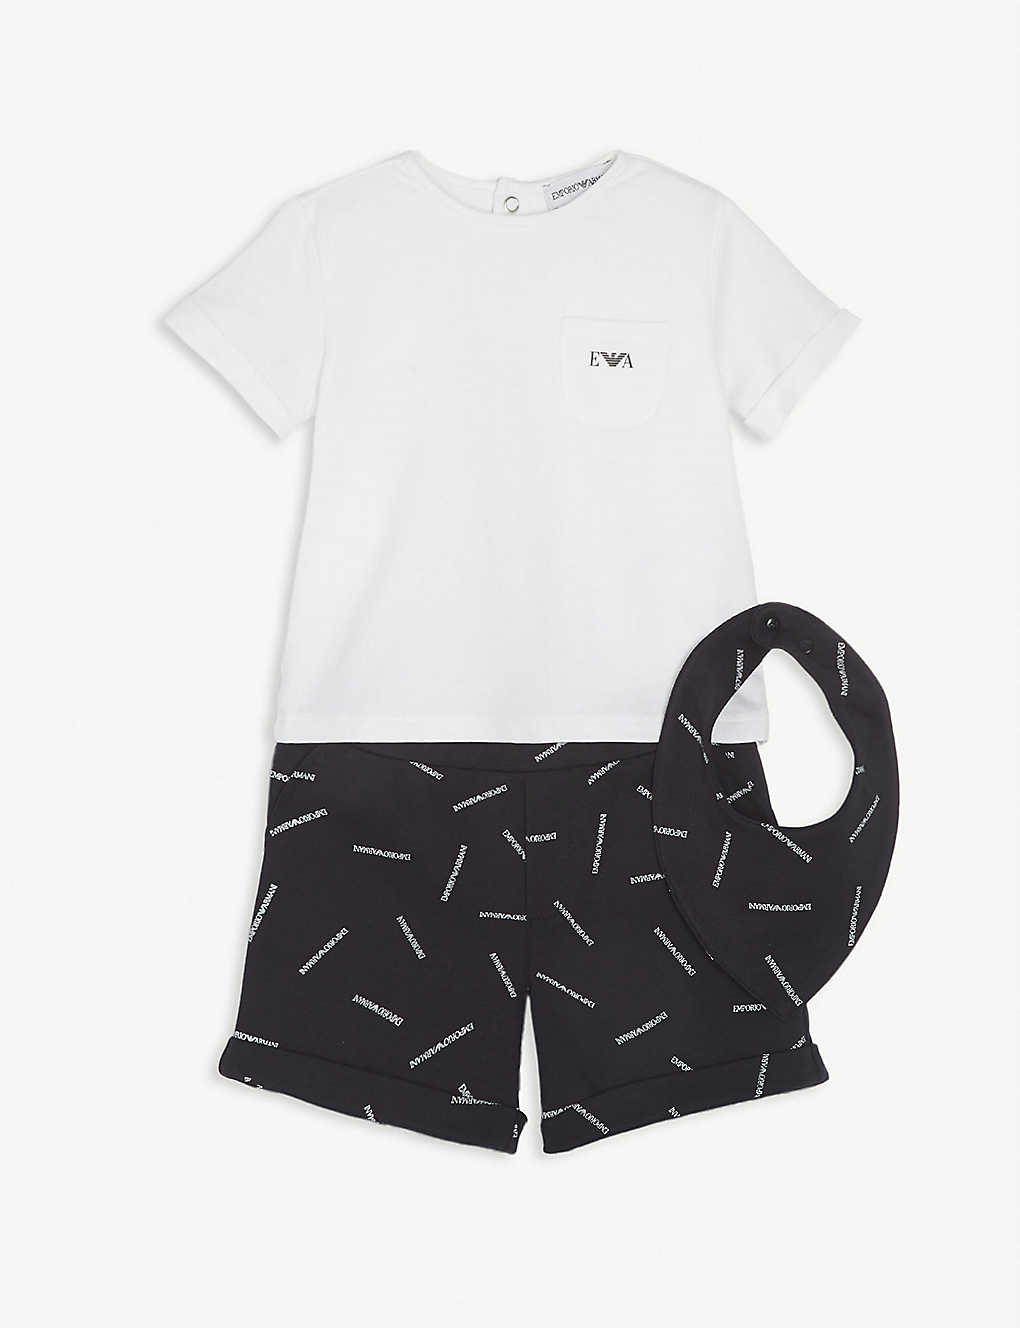 EMPORIO ARMANI: Logo-printed cotton T-shirt shorts and bib set 1-12 months